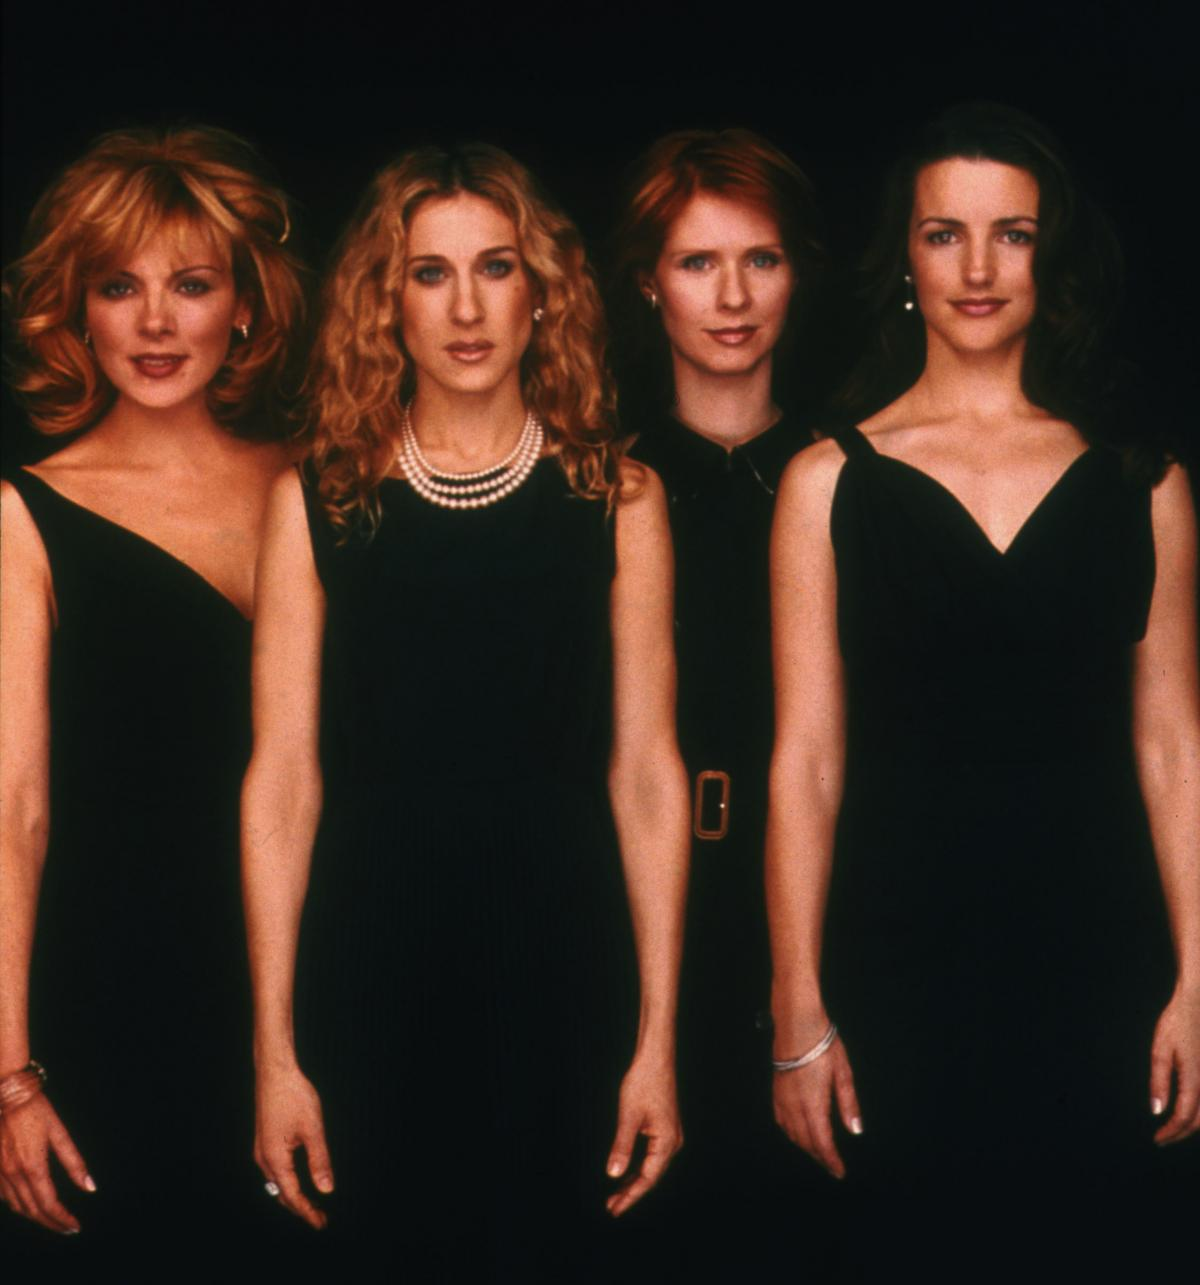 HBO's Sex and the City followed the friendship, fashion and love lives of Samantha, Carrie, Miranda and Charlotte (Kim Cattrall, Sarah Jessica Parker, Cynthia Nixon and Kristin Davis).